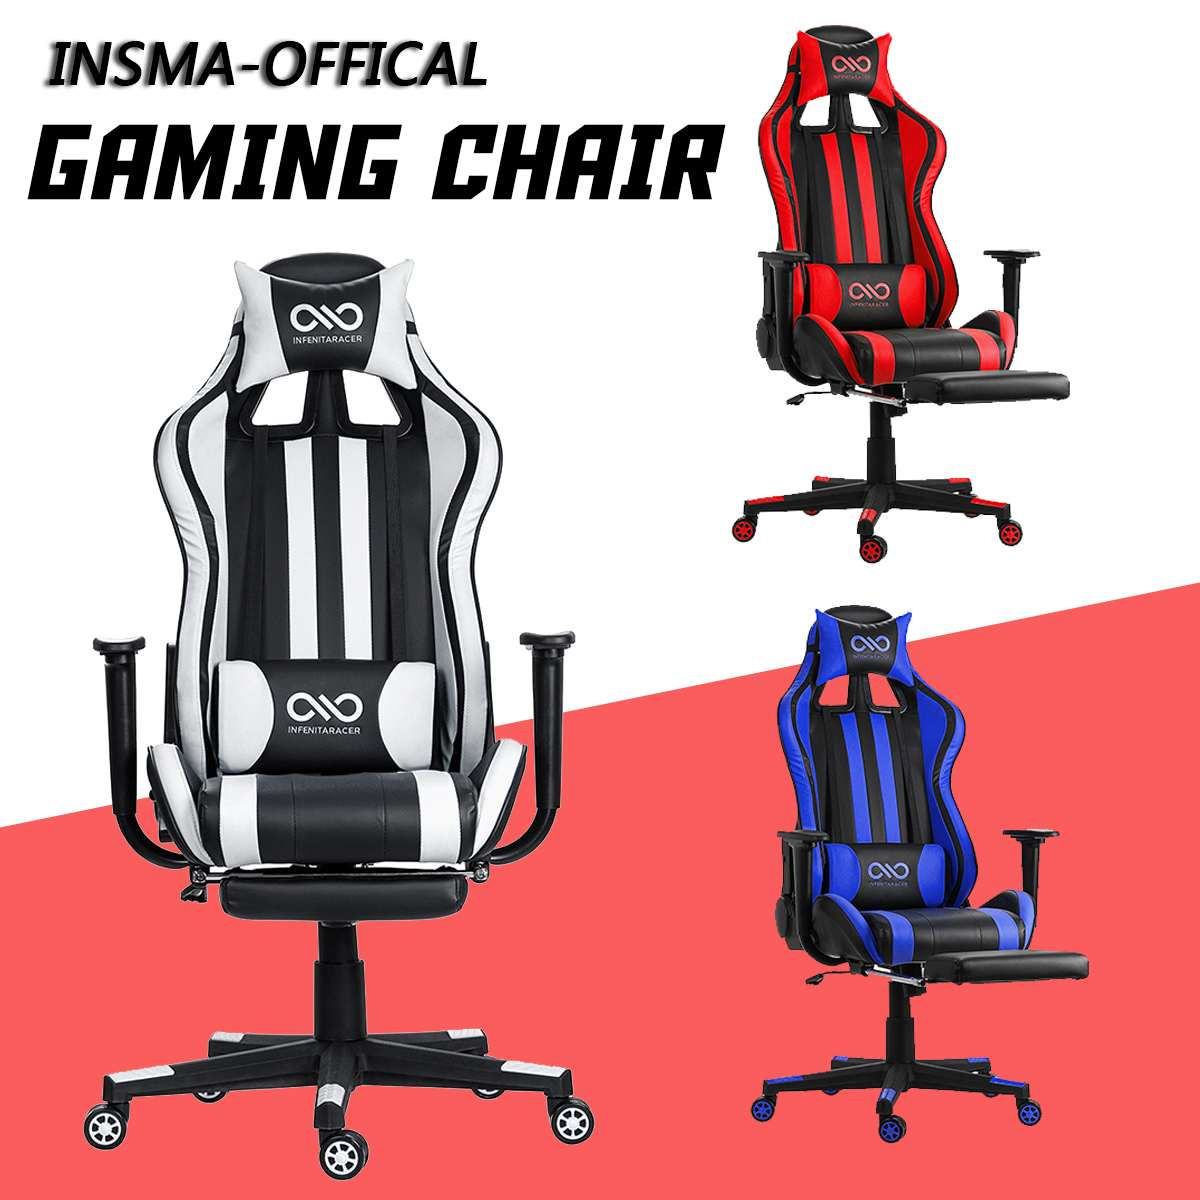 H3c7713759cbd473e9a12335e75980448p - WCG Gaming Chair Computer Armchair Office Chairs Home Swivel Massage Chair Lifting Adjustable Desk Chair Lying Recliner Chair